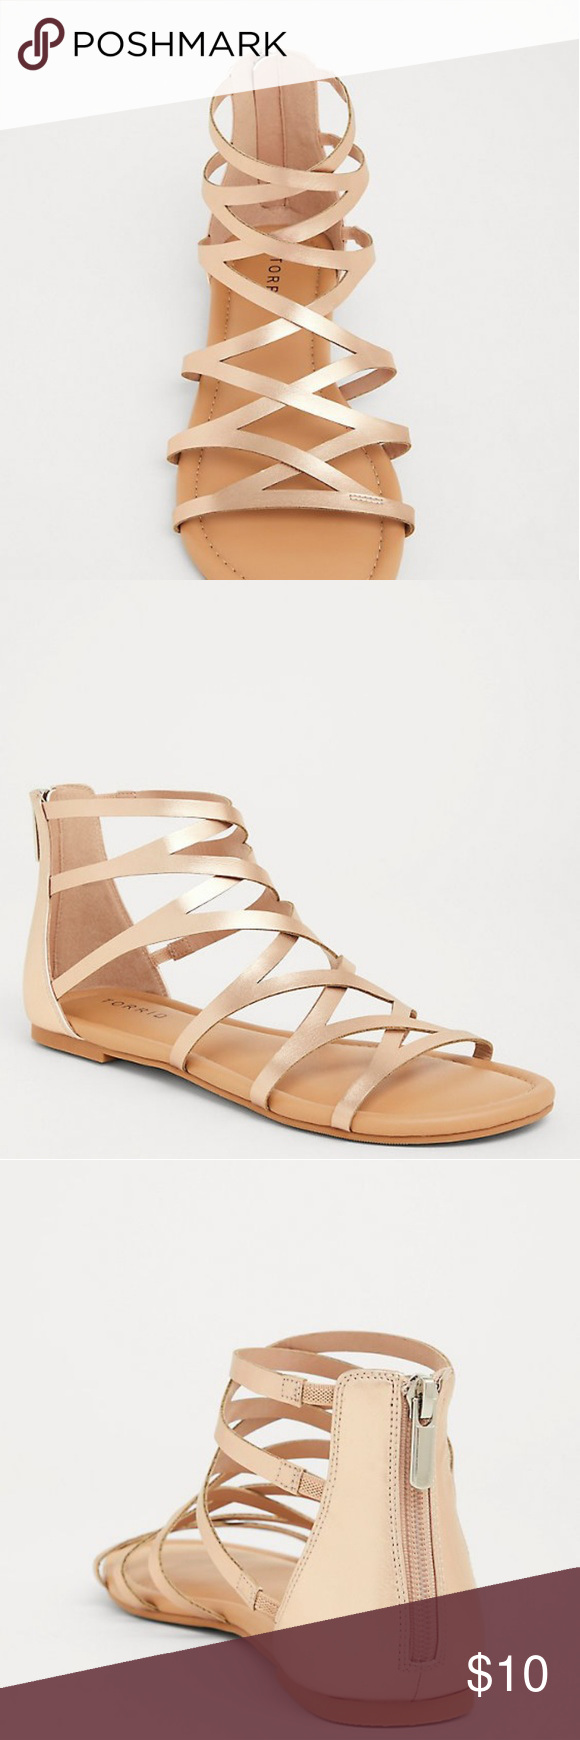 59803f7f966 Torrid Rose Gold Gladiator Sandals A back zip closure lets you slide in and  walk out with ease. Rose gold straps compliment any skin tone and pairs  with ...